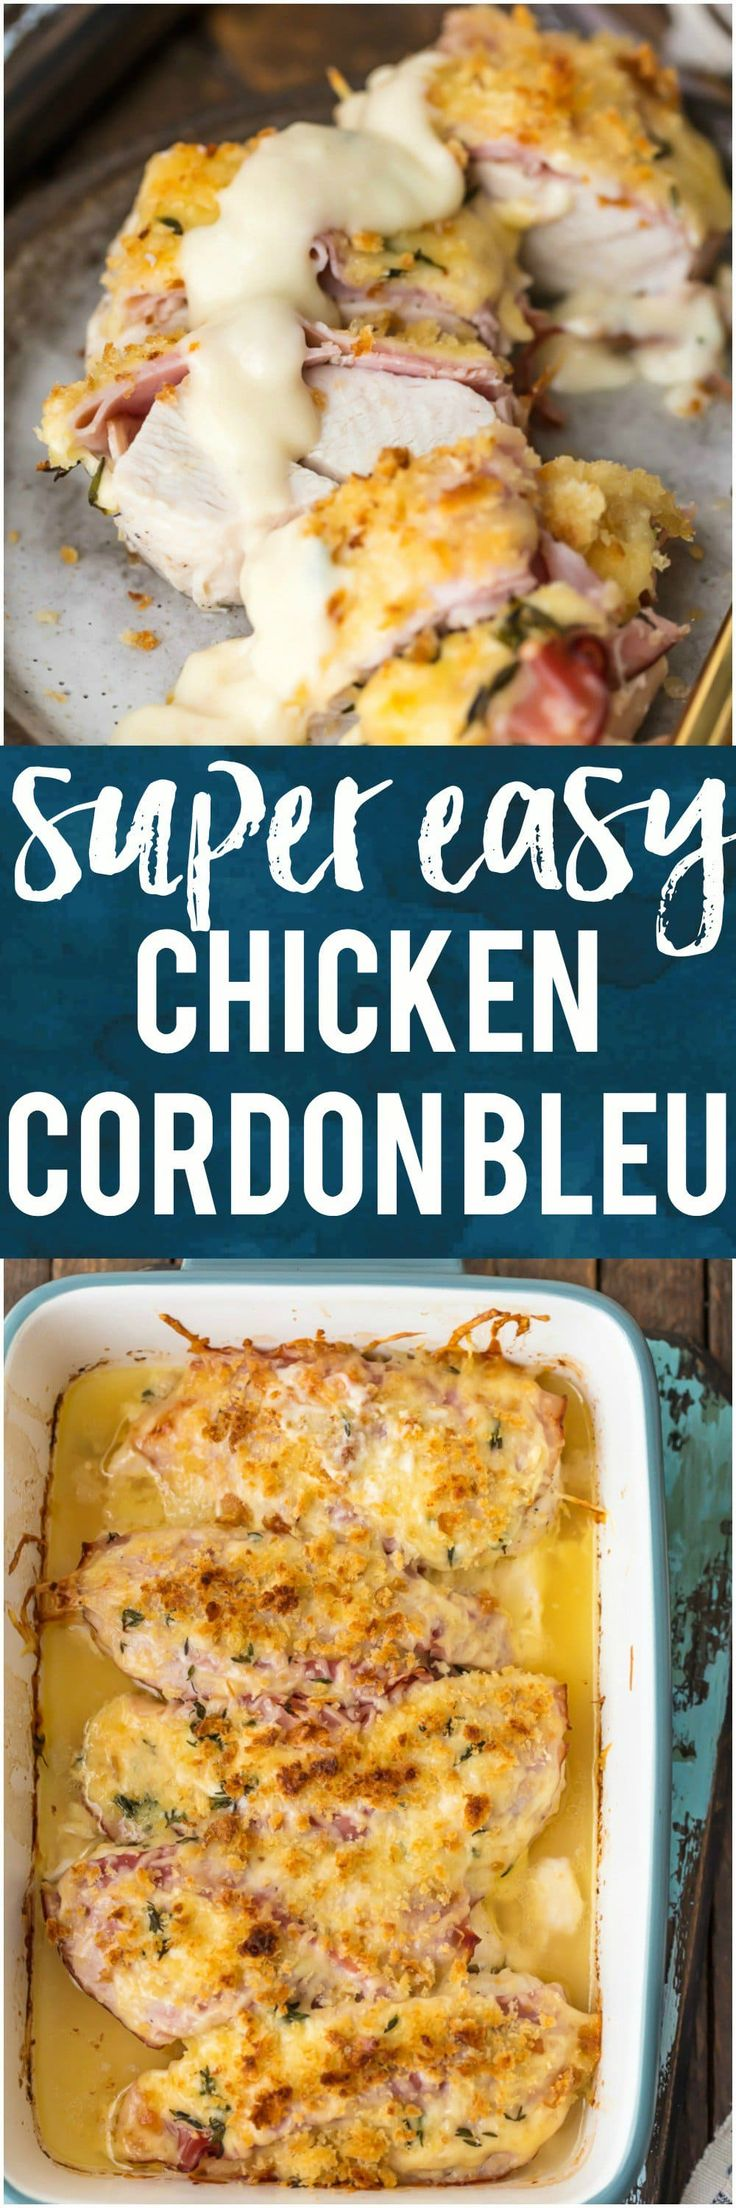 This EASY CHICKEN CORDON BLEU is my favorite recipe for entertaining a crowd. Layers of chicken, ham, cheese, bread crumbs, and delicious white wine dijon sauce. There's no reason to make the fussy version when you have this simple recipe that's just as delicious. #chicken #ham #cheese